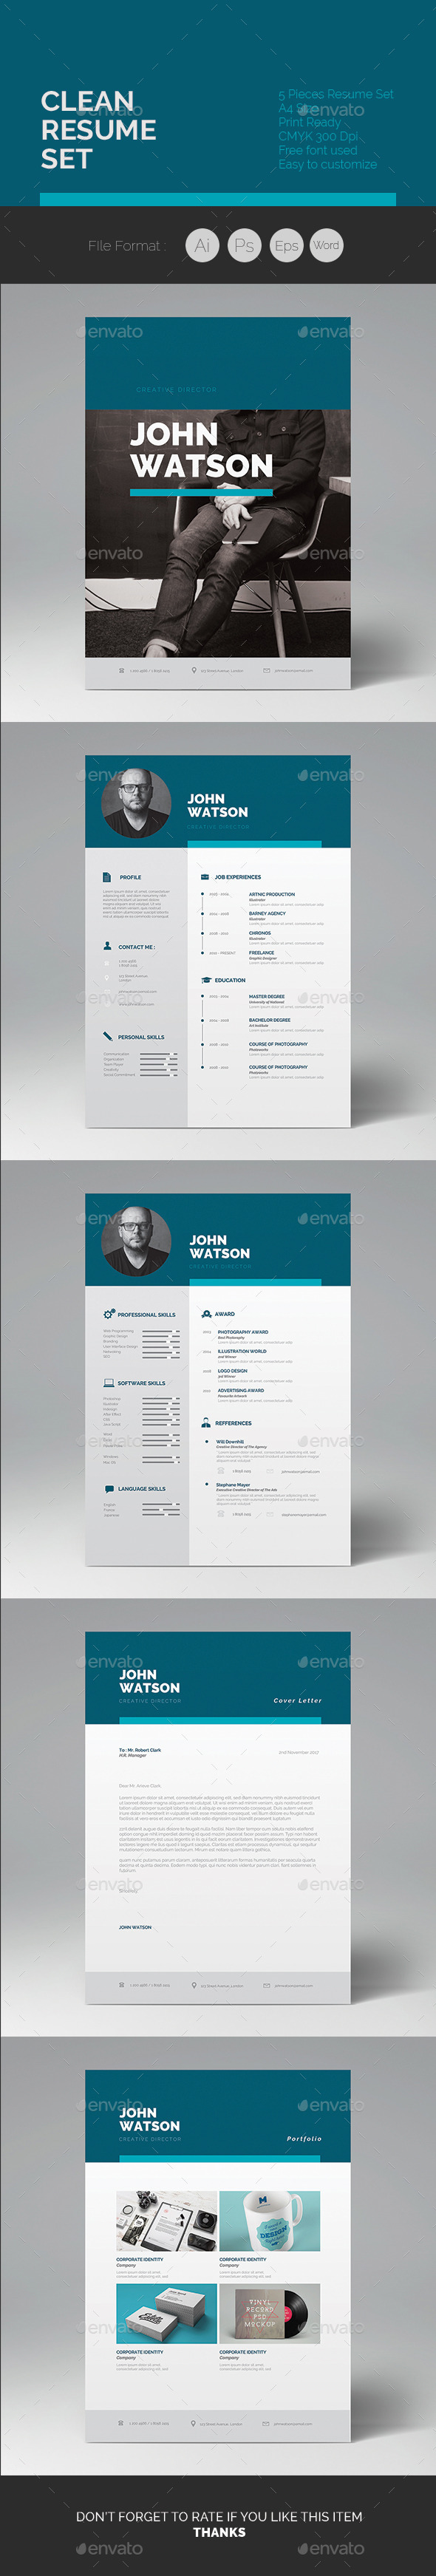 GraphicRiver Clean Resume 04 10182035